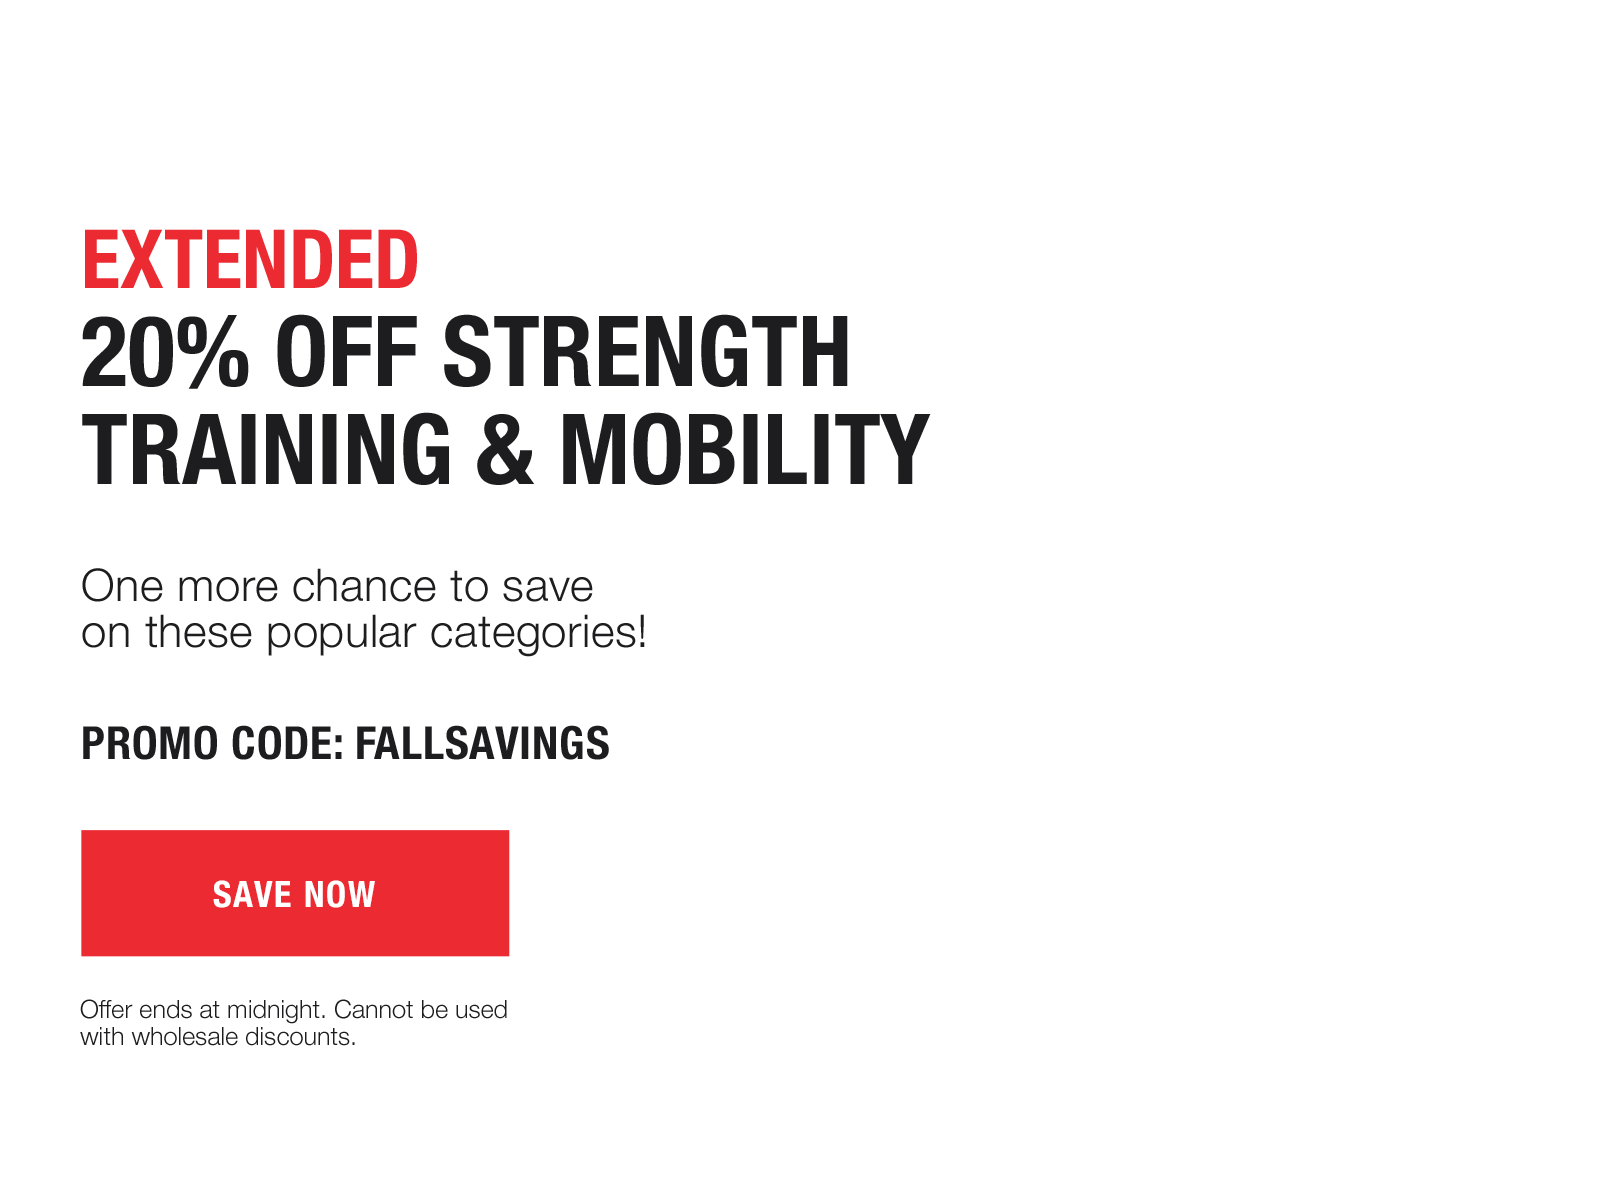 1 day extension: 20% off mobility and strength training with code FALLSAVINGS